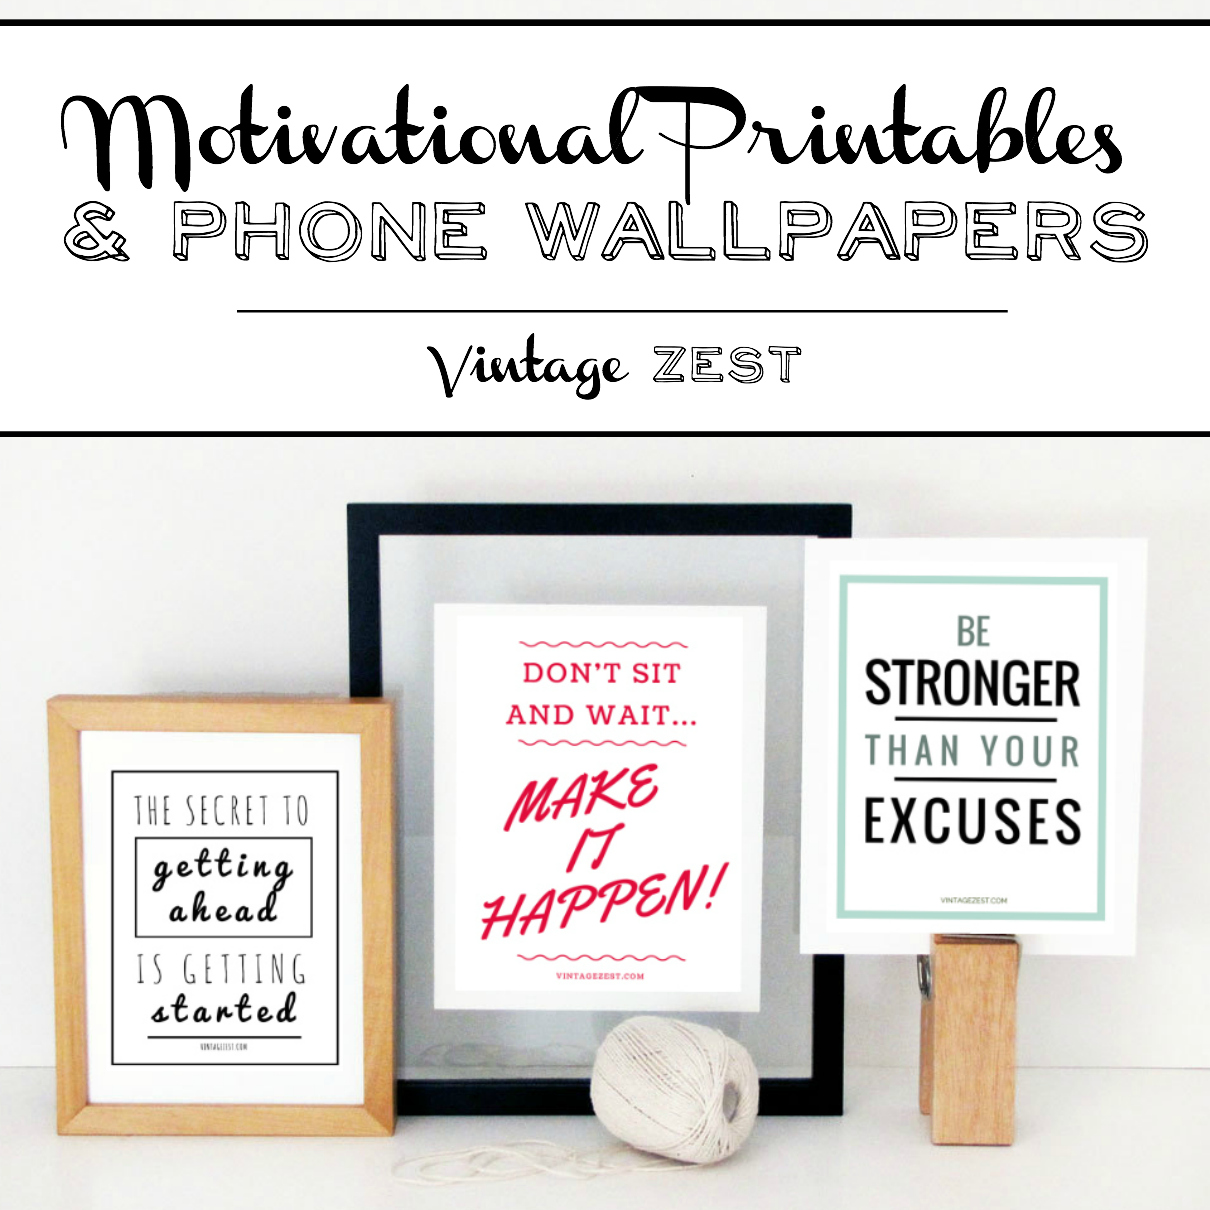 Motivational Printables & Phone Wallpapers on Diane's Vintage Zest!  #ad #V8LlenodeSabor